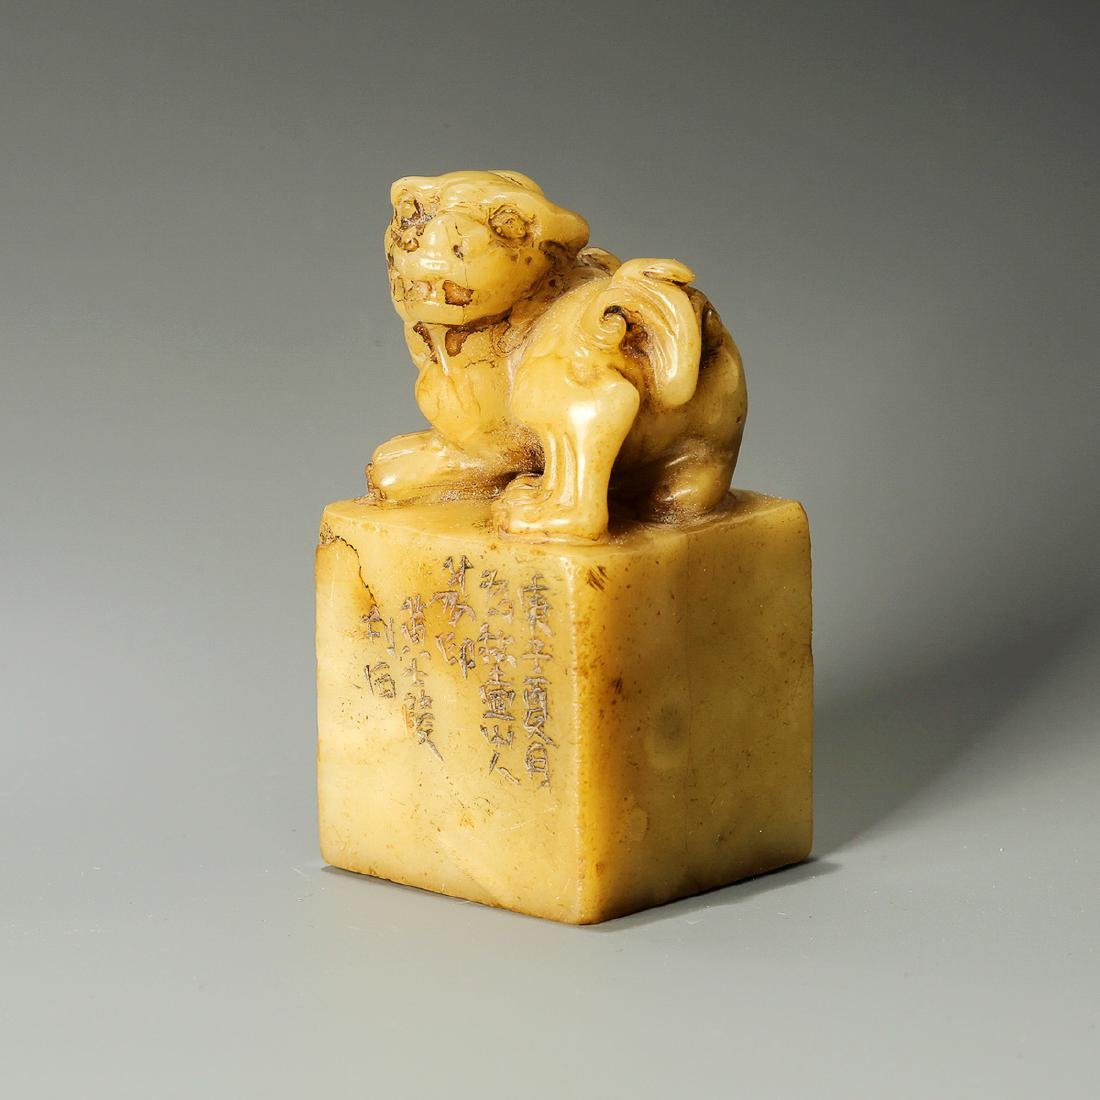 Qing Dynasty, A Lion Hand-Carved Shoushan Stone Seal